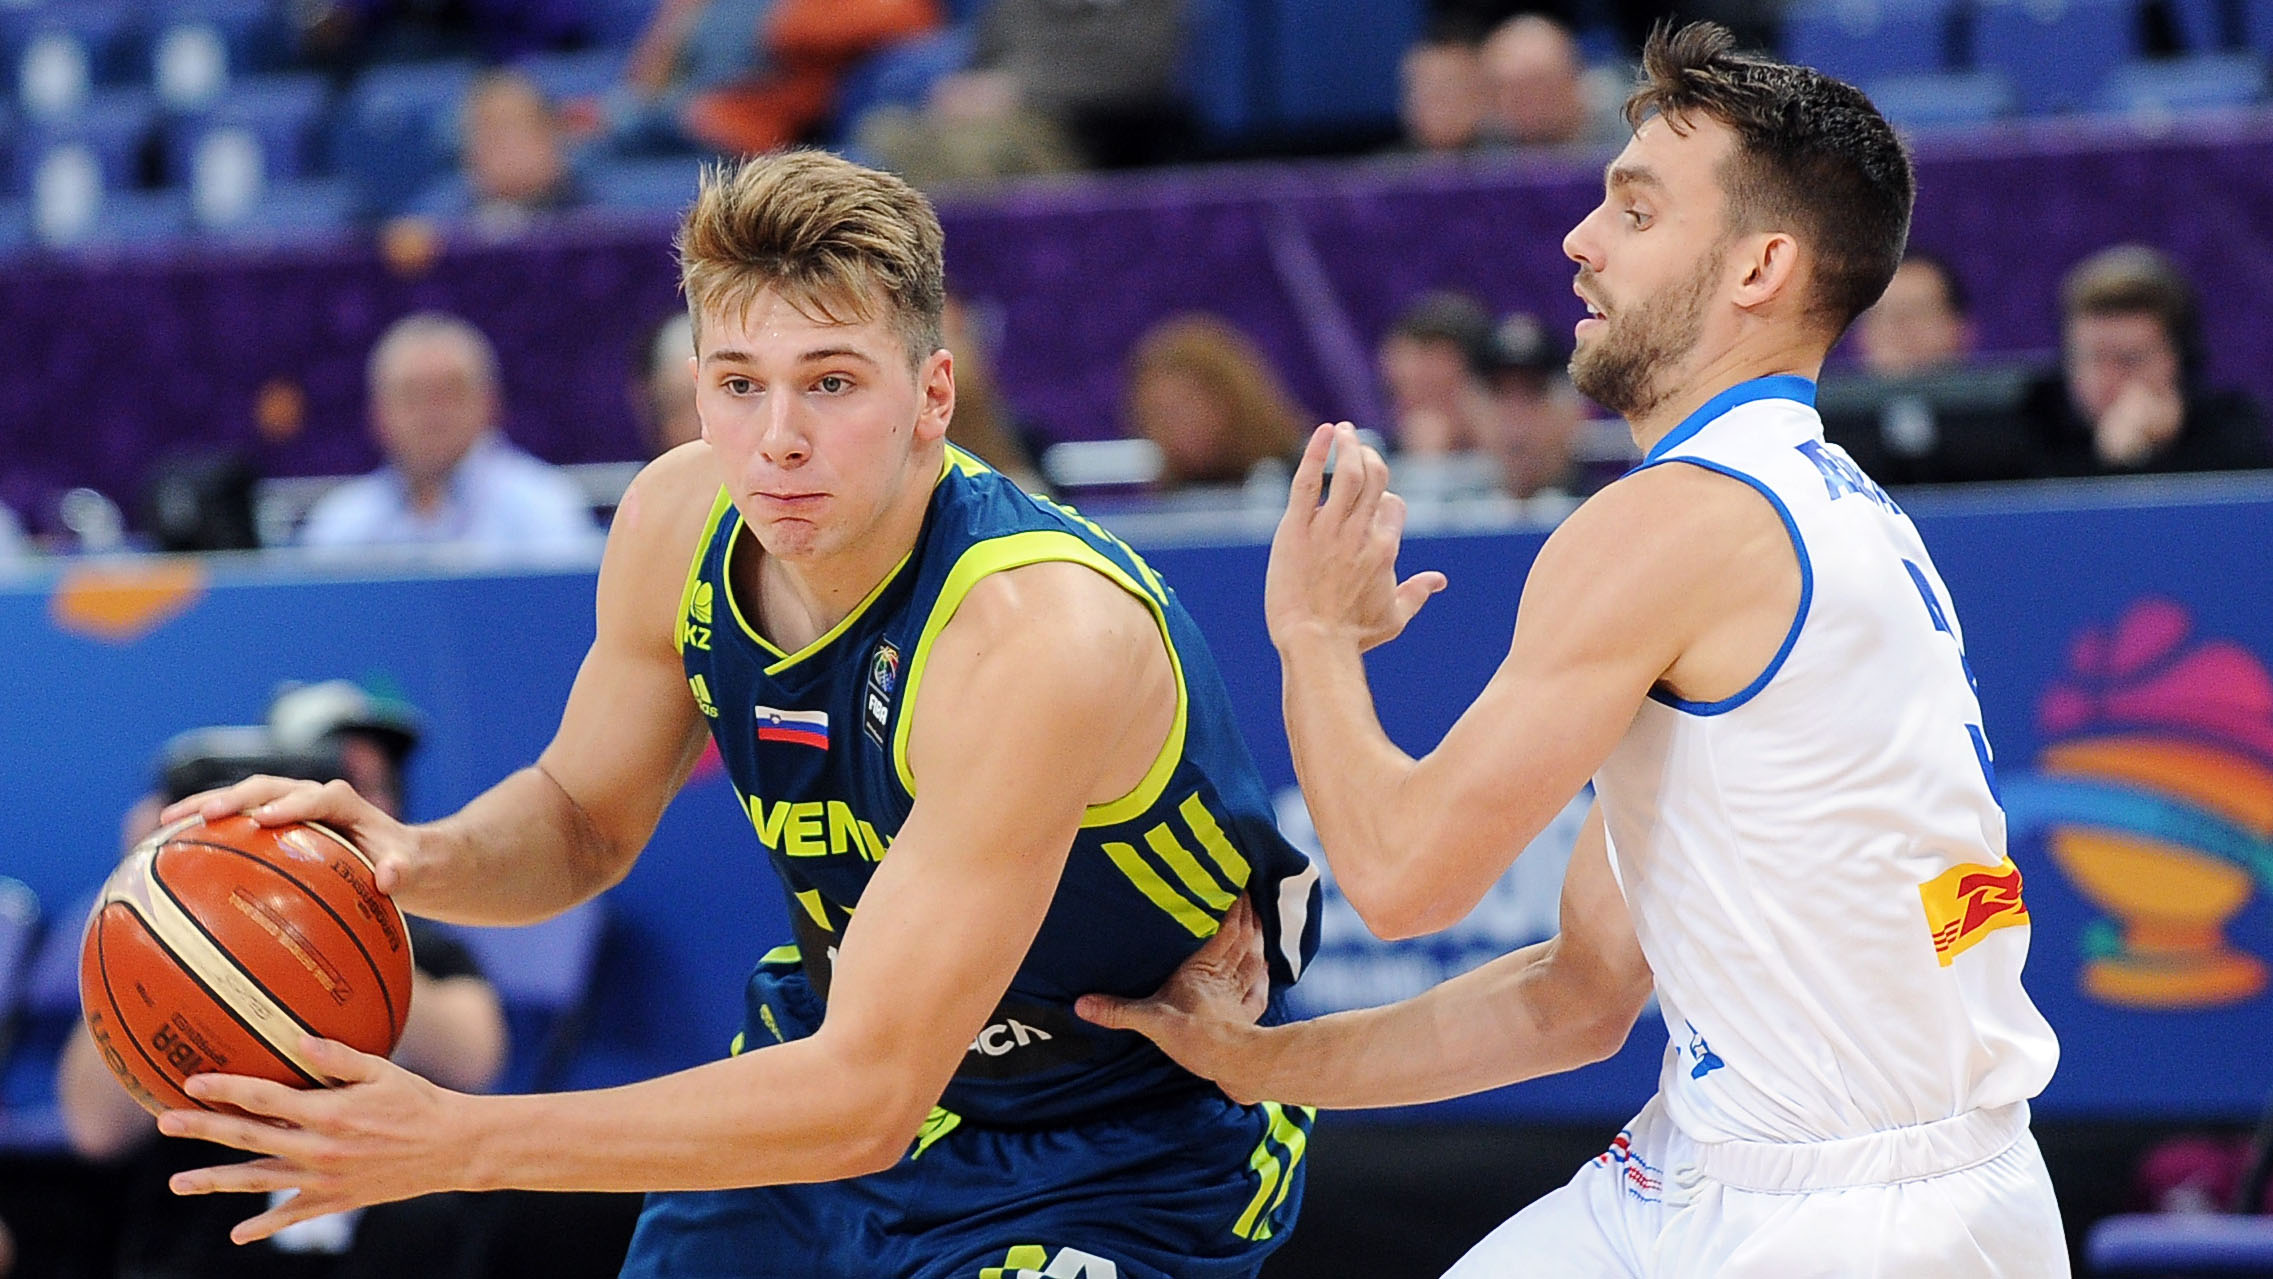 Four Olympic Qualifying Tournaments to determine final men's basketball spots at Tokyo Olympics